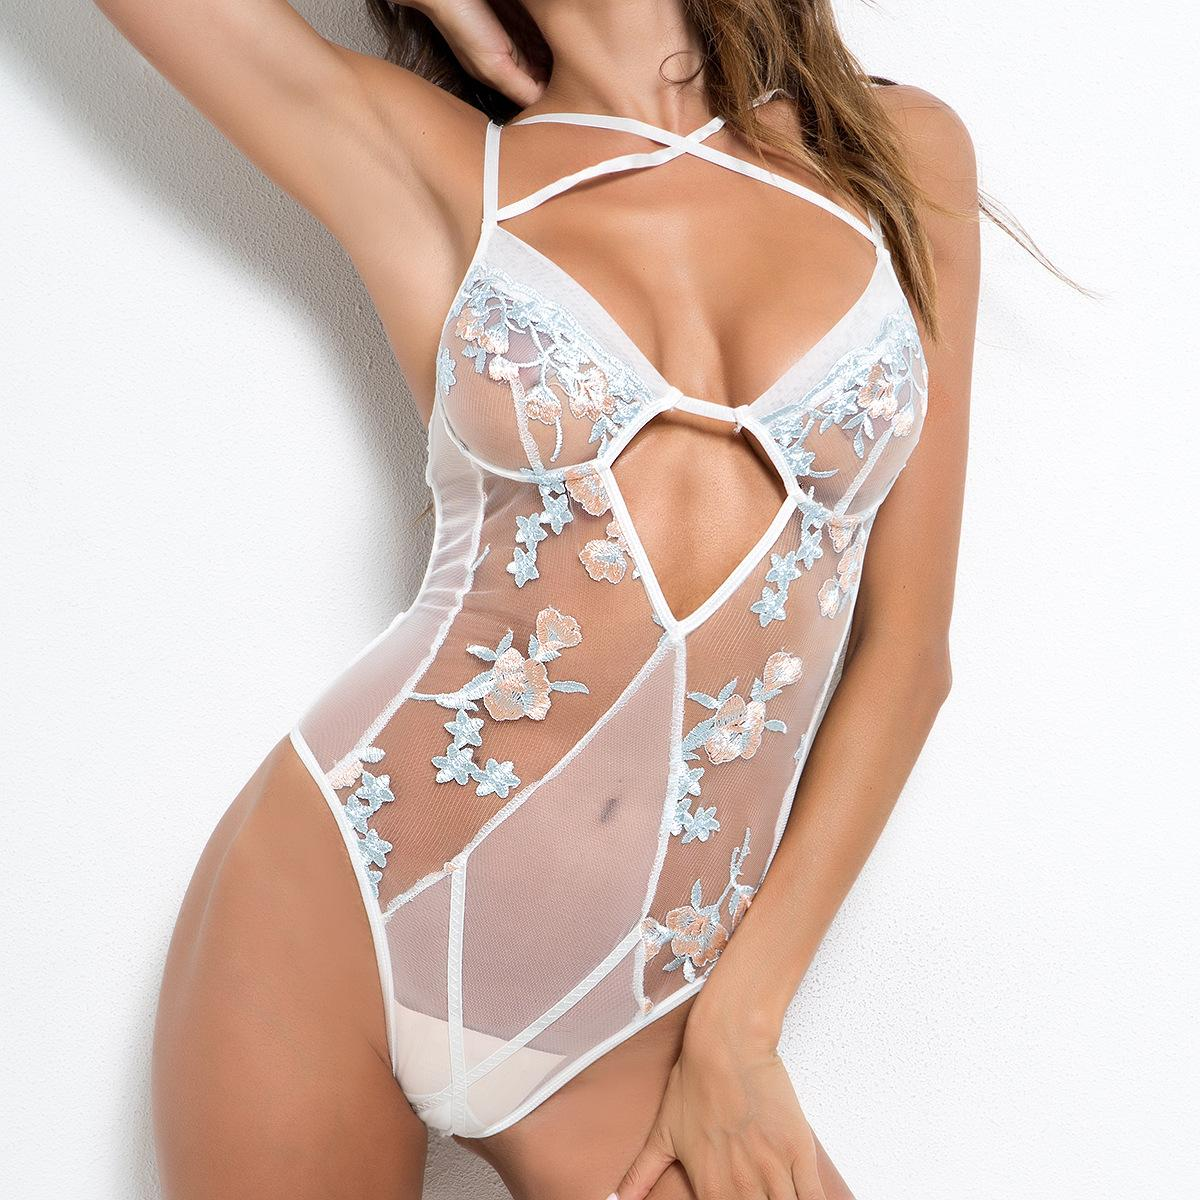 Embroidered Floral Sexy Mesh Stitching Lingerie Strap Hollow Out Underwear  V Neck Backless Lace One Piece Bodysuit Sleepwear Sex Hotsale Chemise  Nightwear ... 745b5bfc0